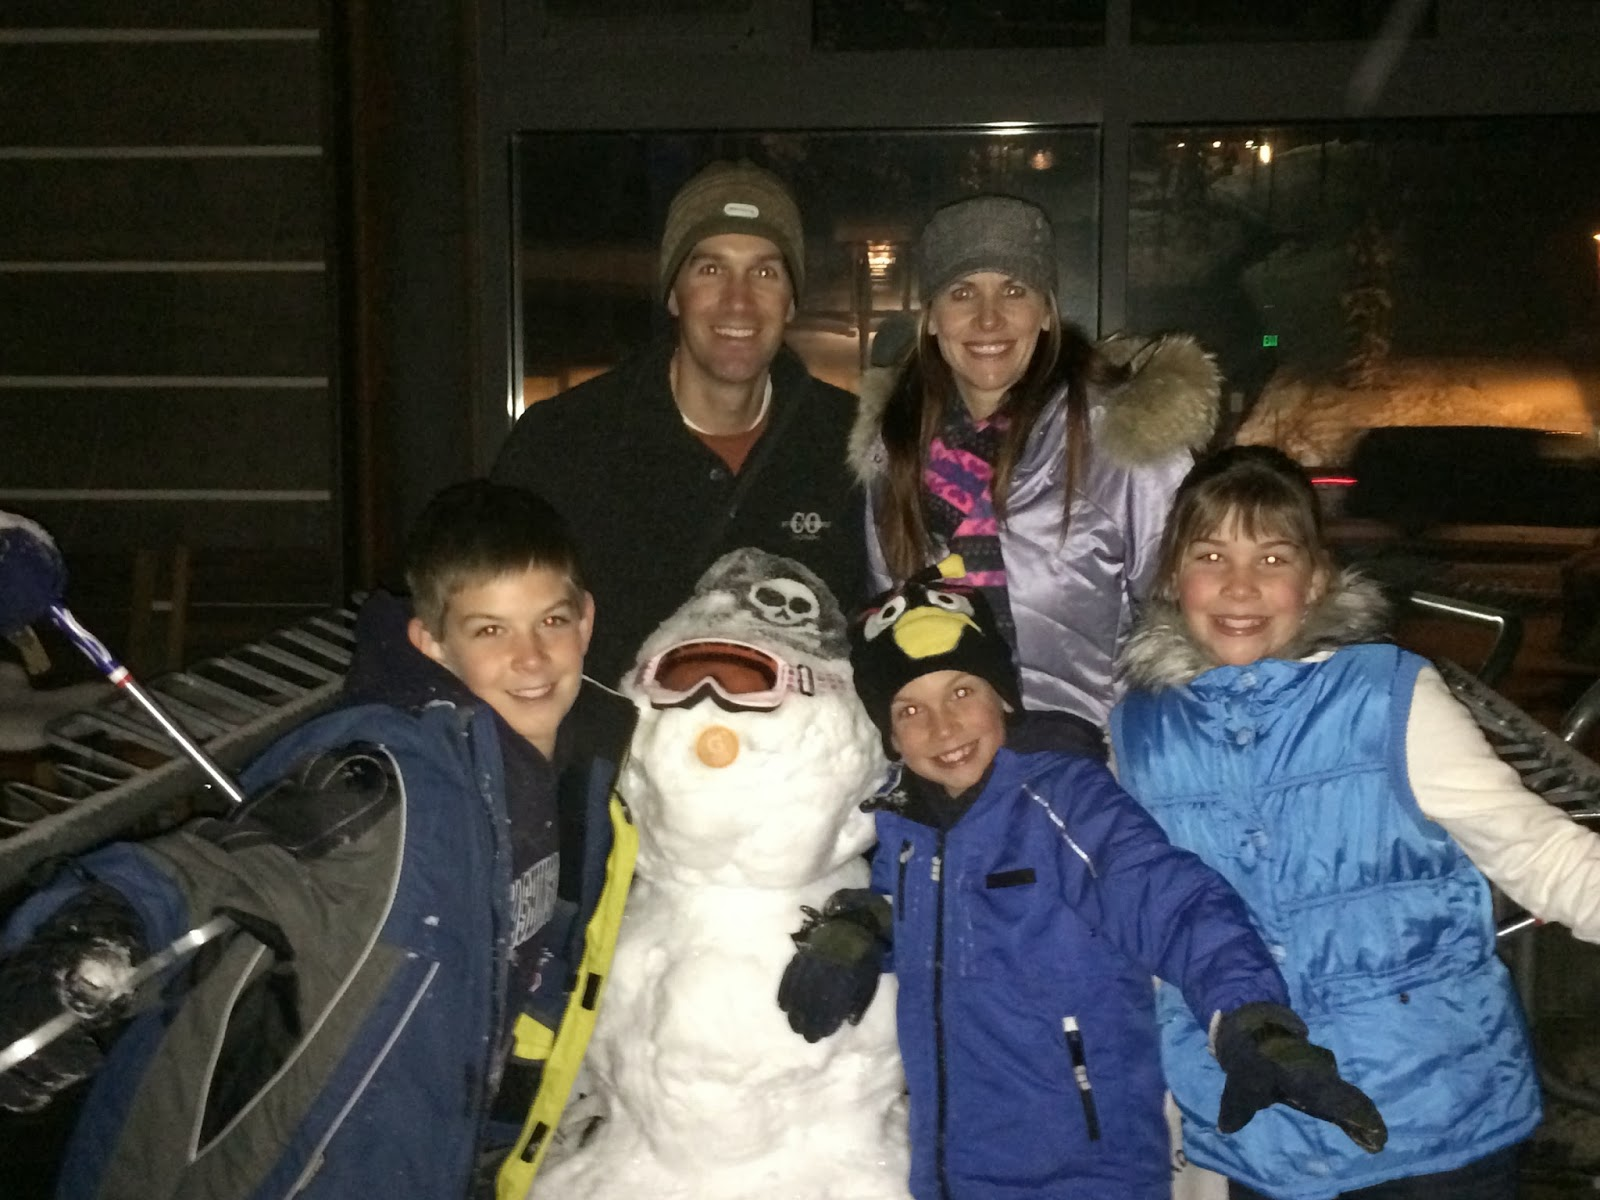 Mammoth Mountain family Ski trip! www.HealthyFitFocused.com